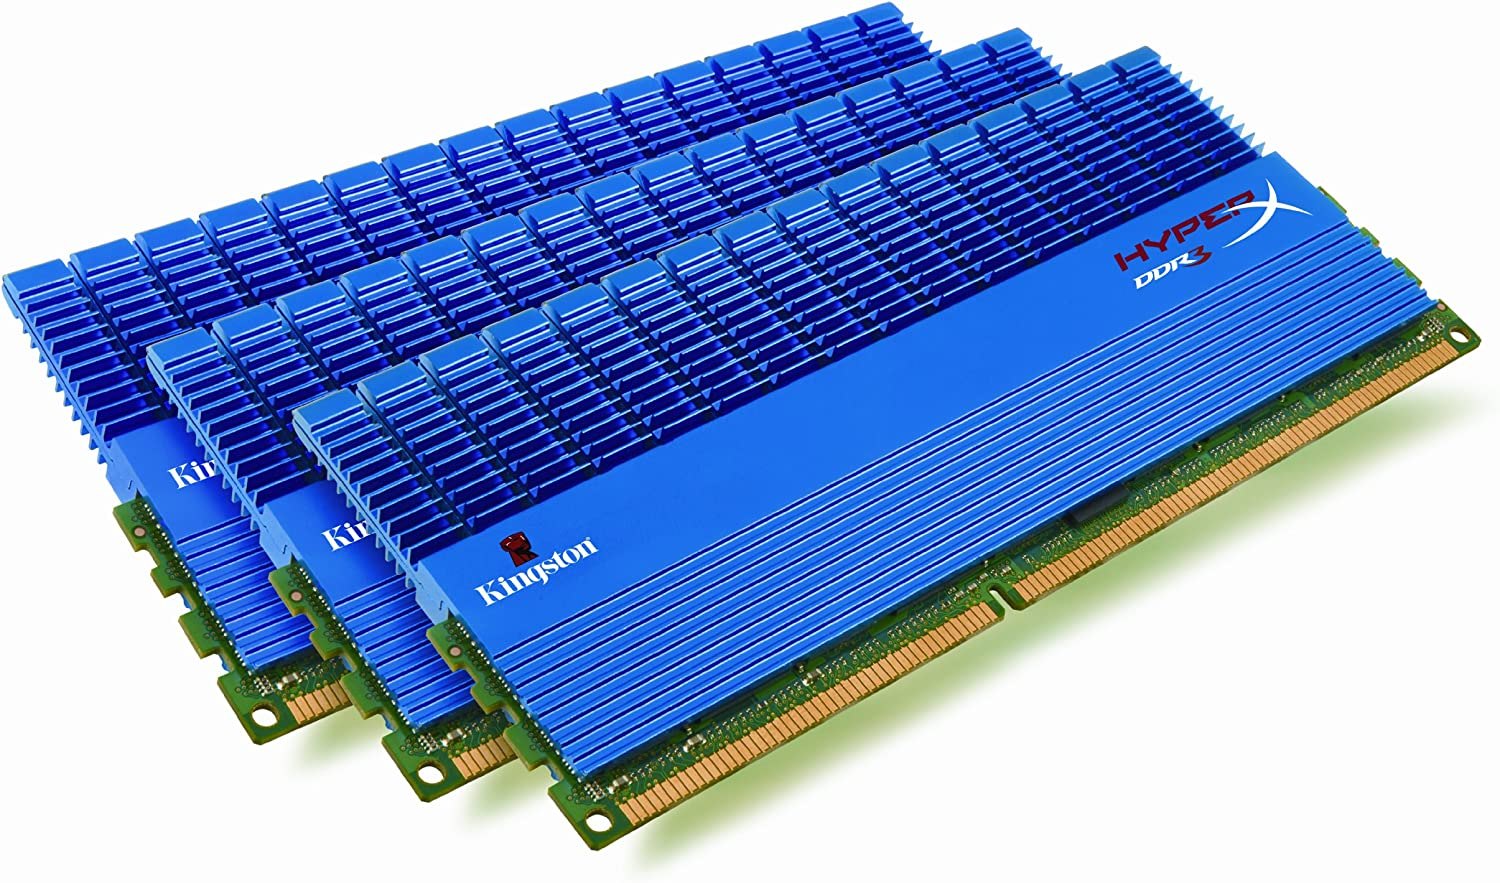 Kingston HyperX 6GB Kit (3x2GB Modules) 1600MHz DDR3 DIMM Desktop Memory ( KHX1600C9D3T1K3/6GX): Amazon.ca: Electronics